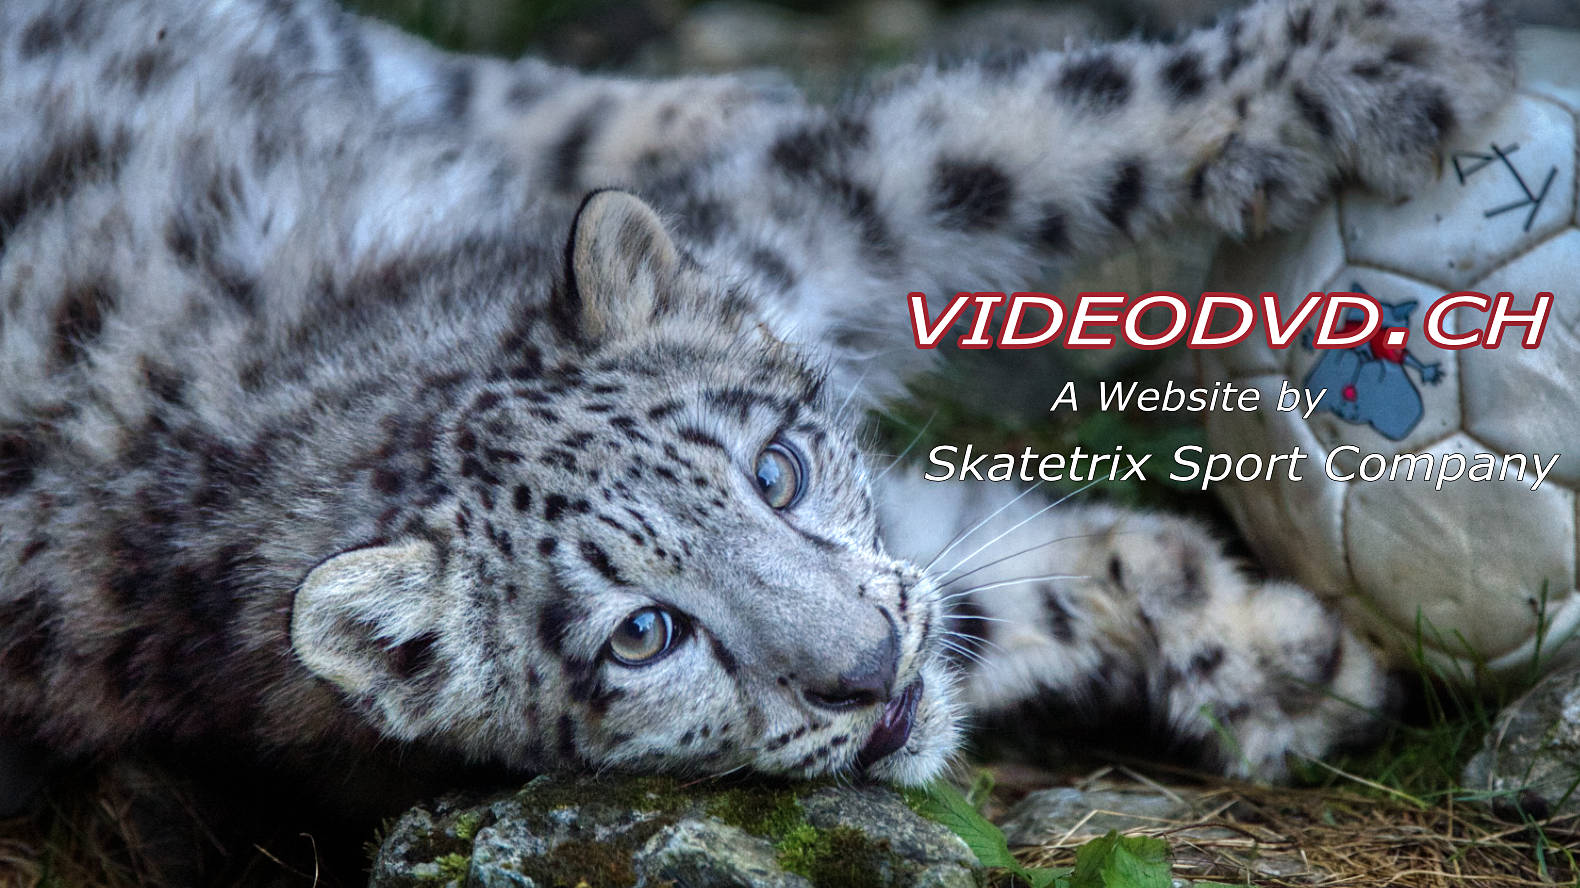 WELCOME AT VIDEODVD.CH - A responsive Website by Skatetrix Sport Company!